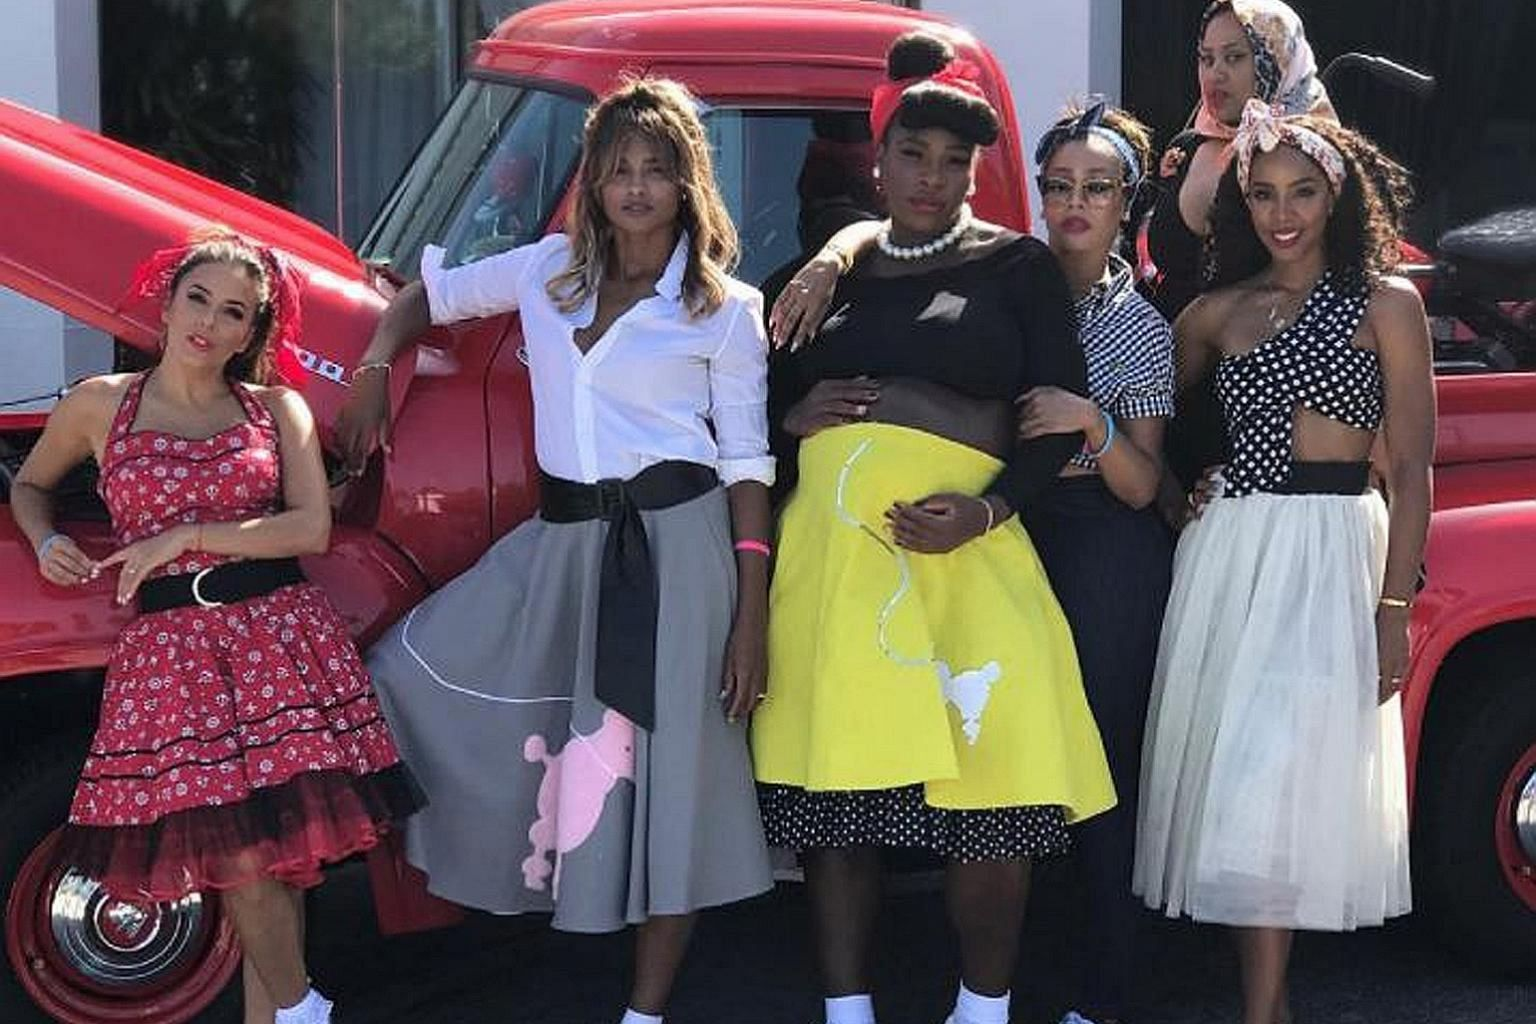 Tennis star Serena Williams' pregnancy playbook included throwing a baby shower last weekend, where the theme was a smashing retro return to the 1950s, including poodle skirts. Having a ball in this picture are (from far left) actress Eva Longoria, s